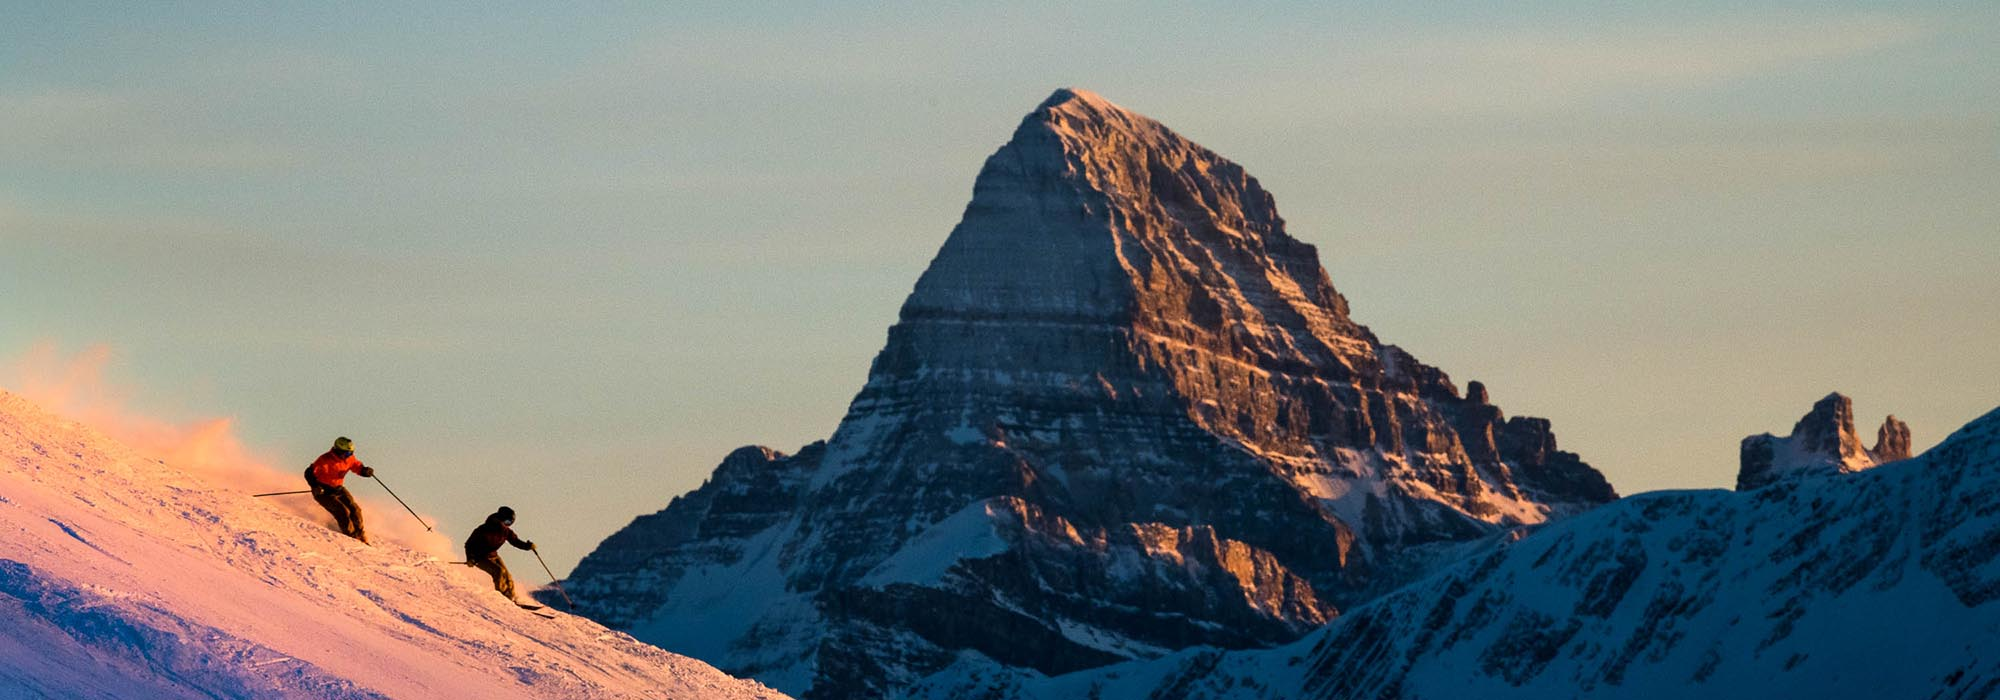 Skiers at Banff Sunshine Village with Mt. Assiniboine in the background, photo by Reuben Krabbe.